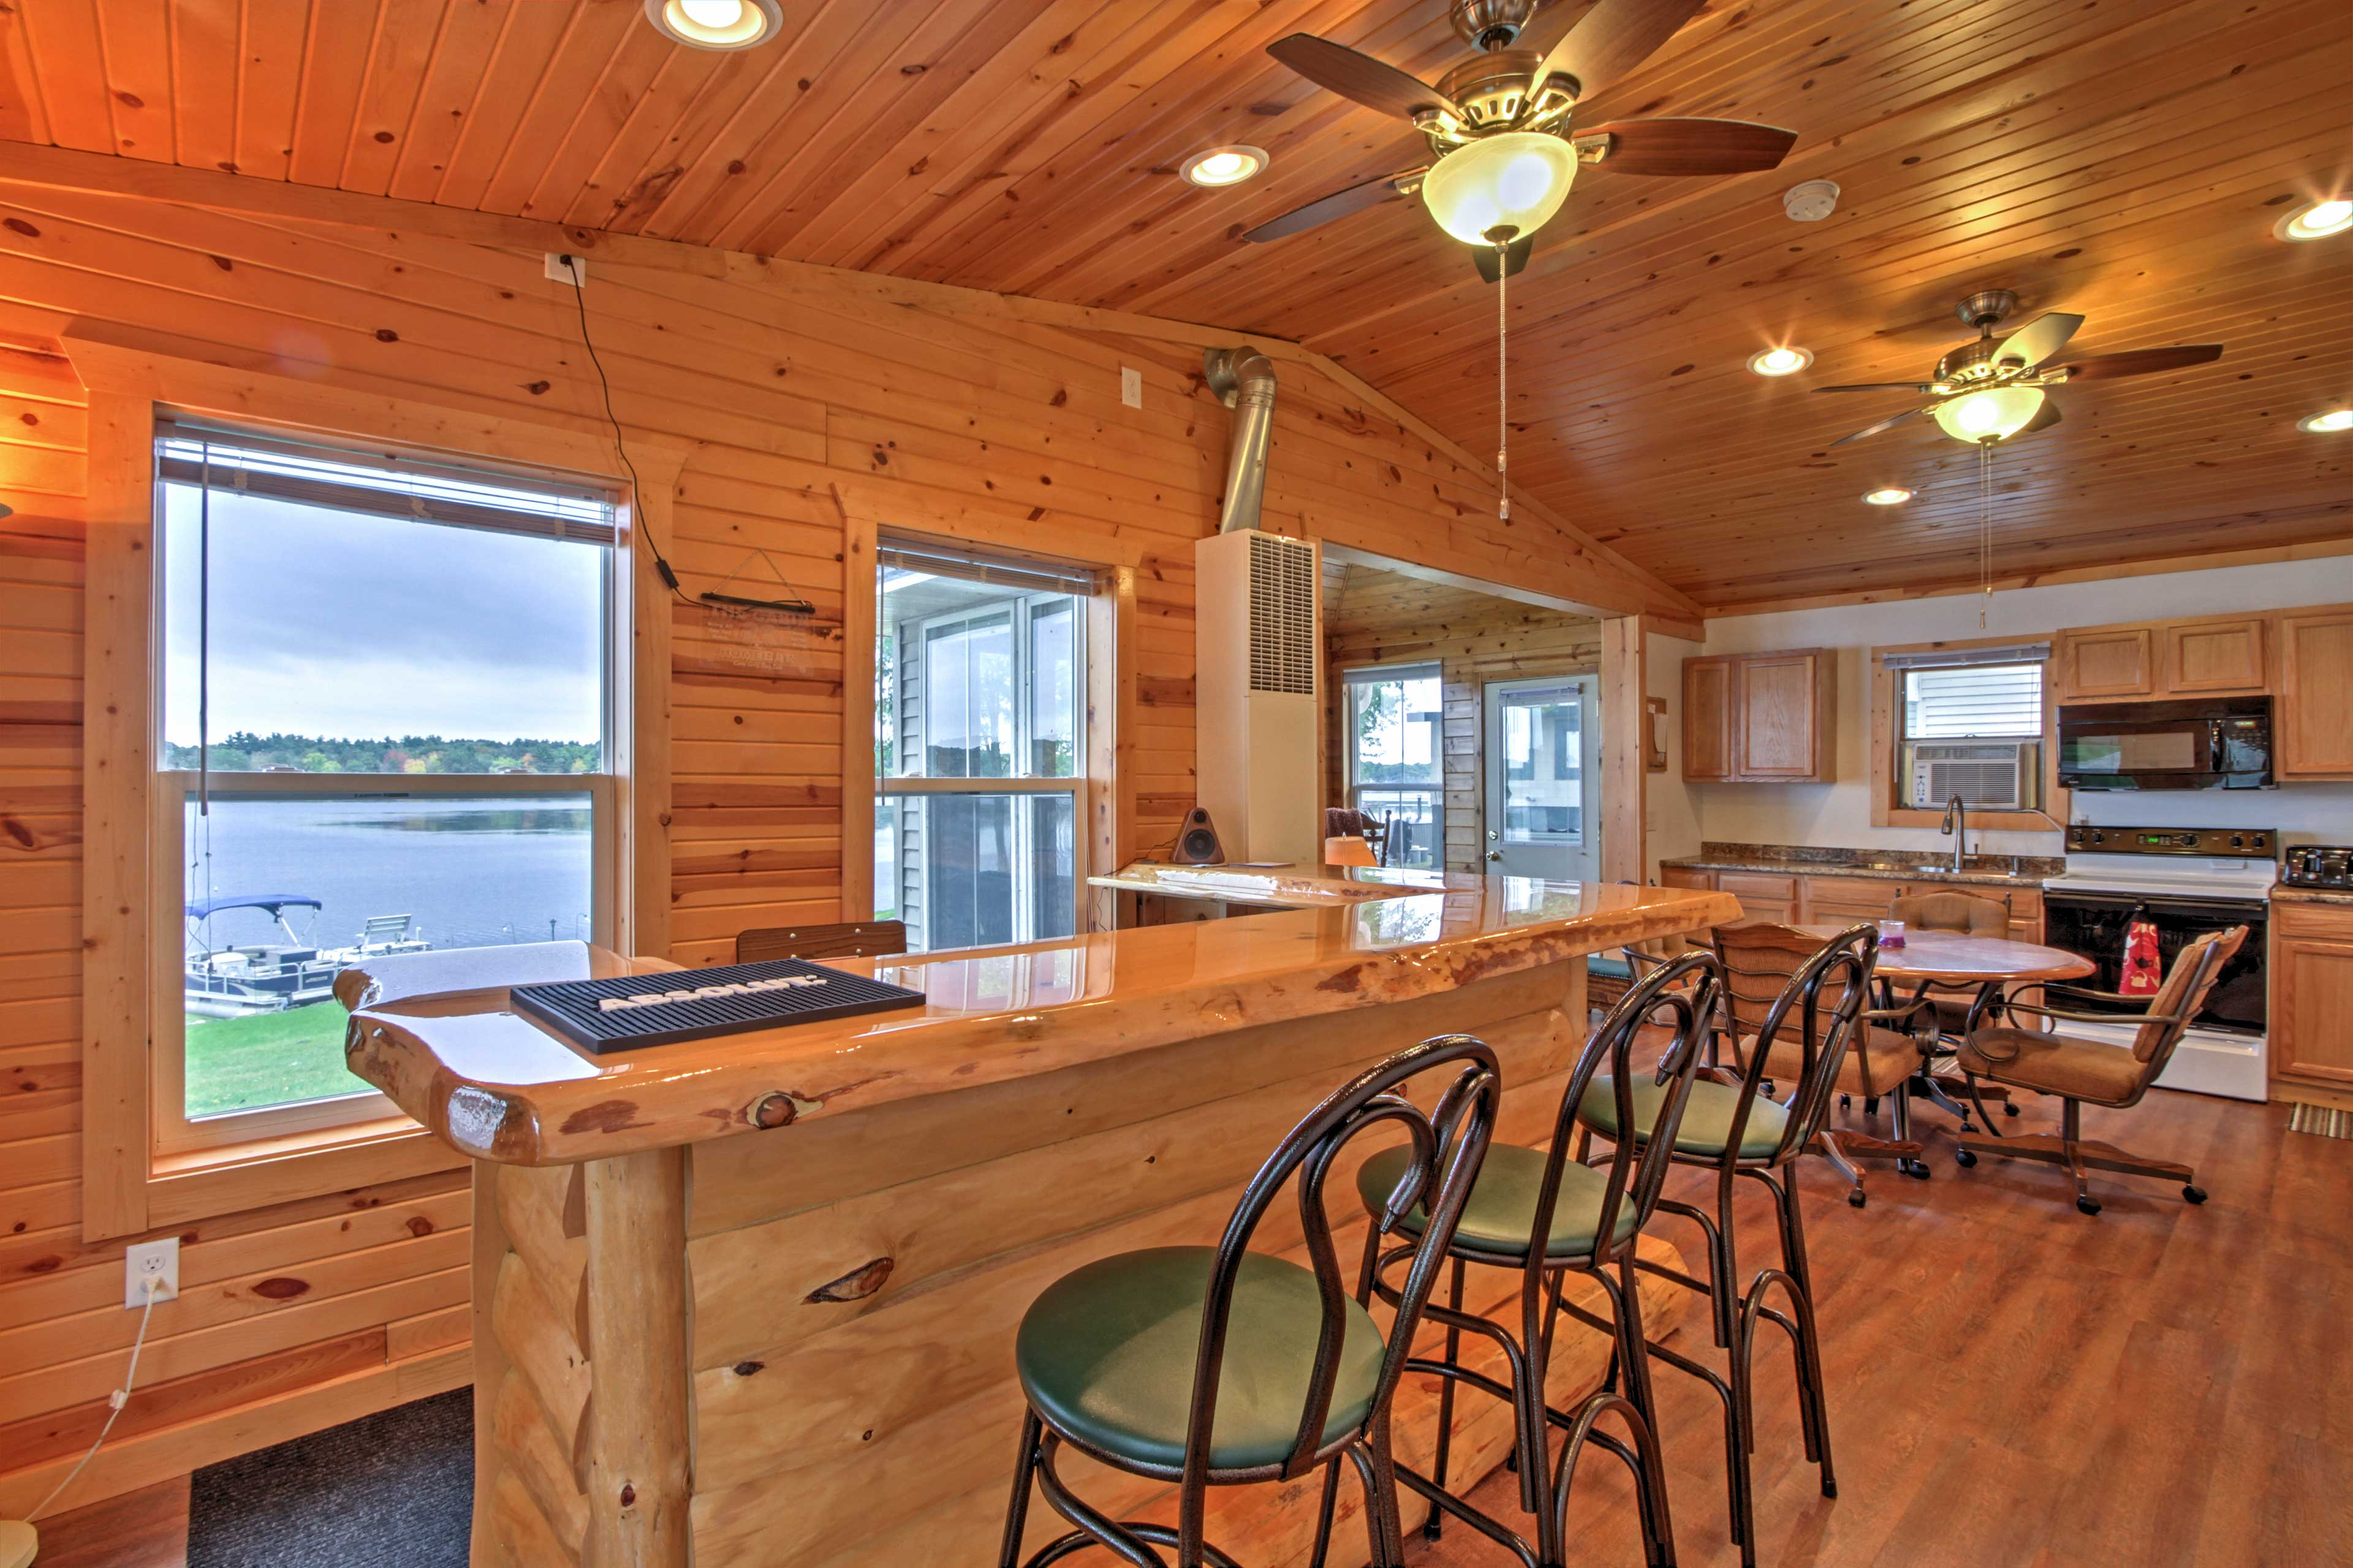 Pull up a stool at the bar and enjoy a brew while you look out over the lake.